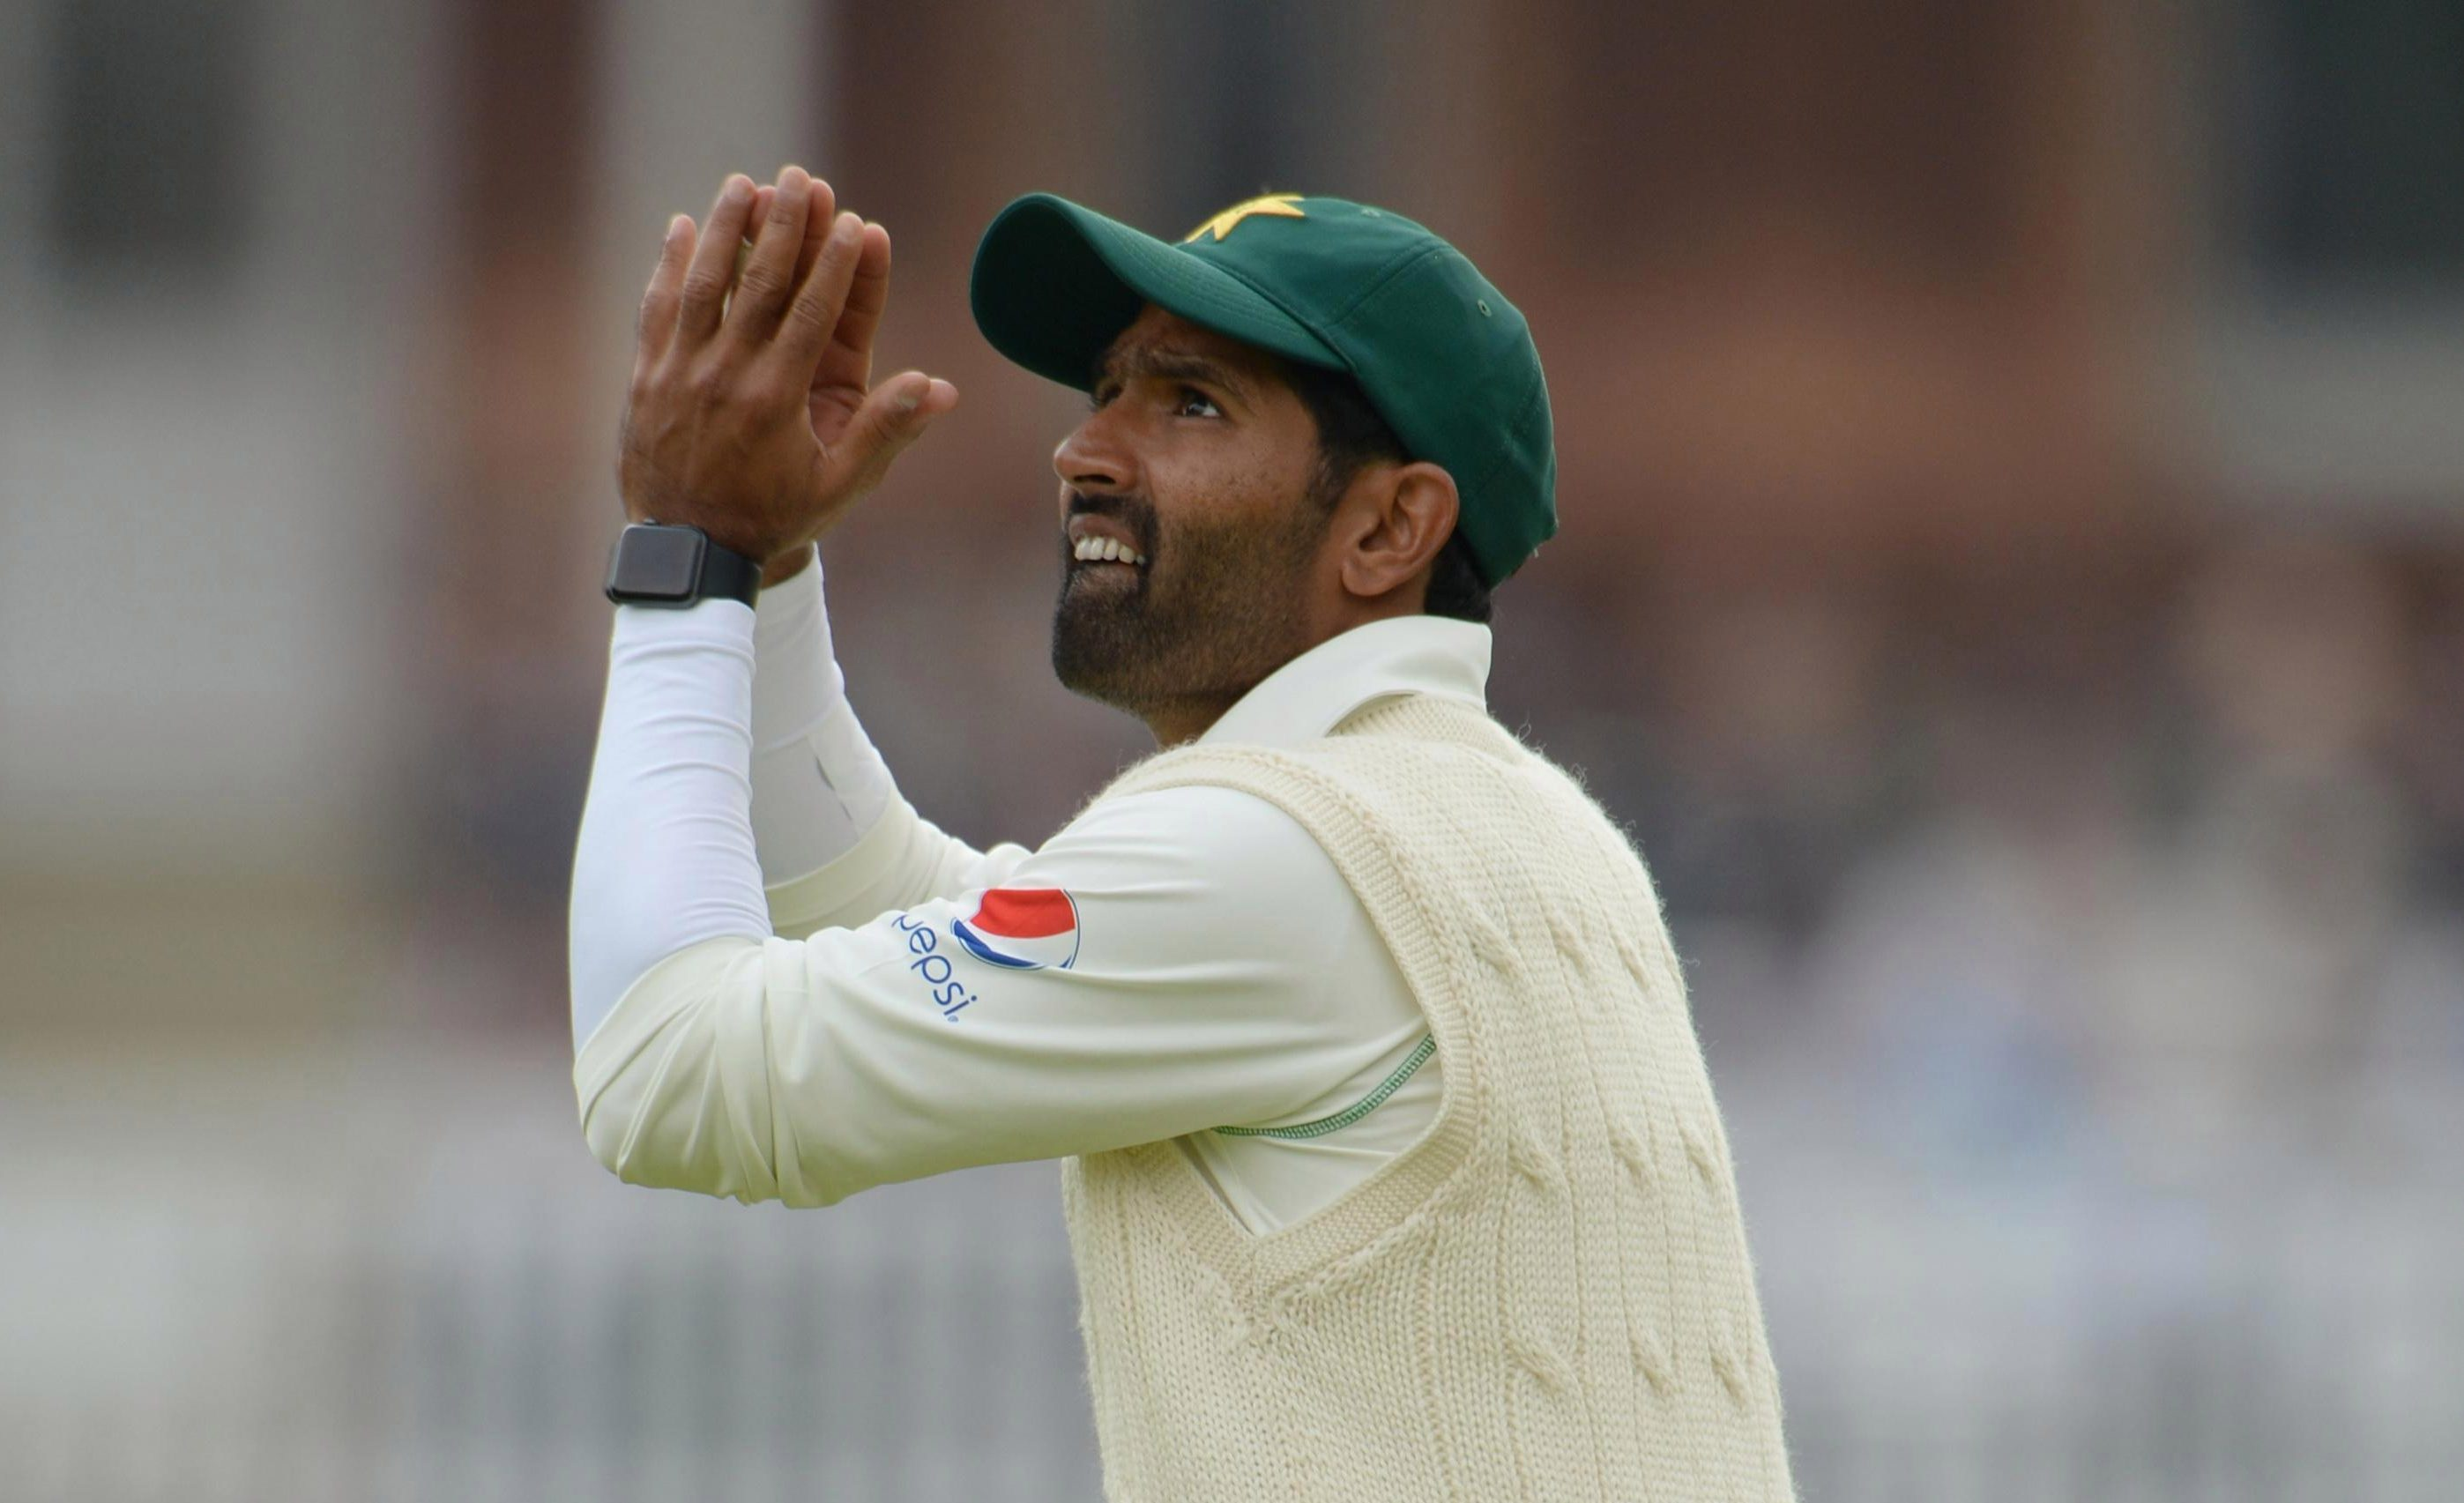 Asad Shafiq was seen wearing what looked like an Apple watch or similar smart device on his wrist